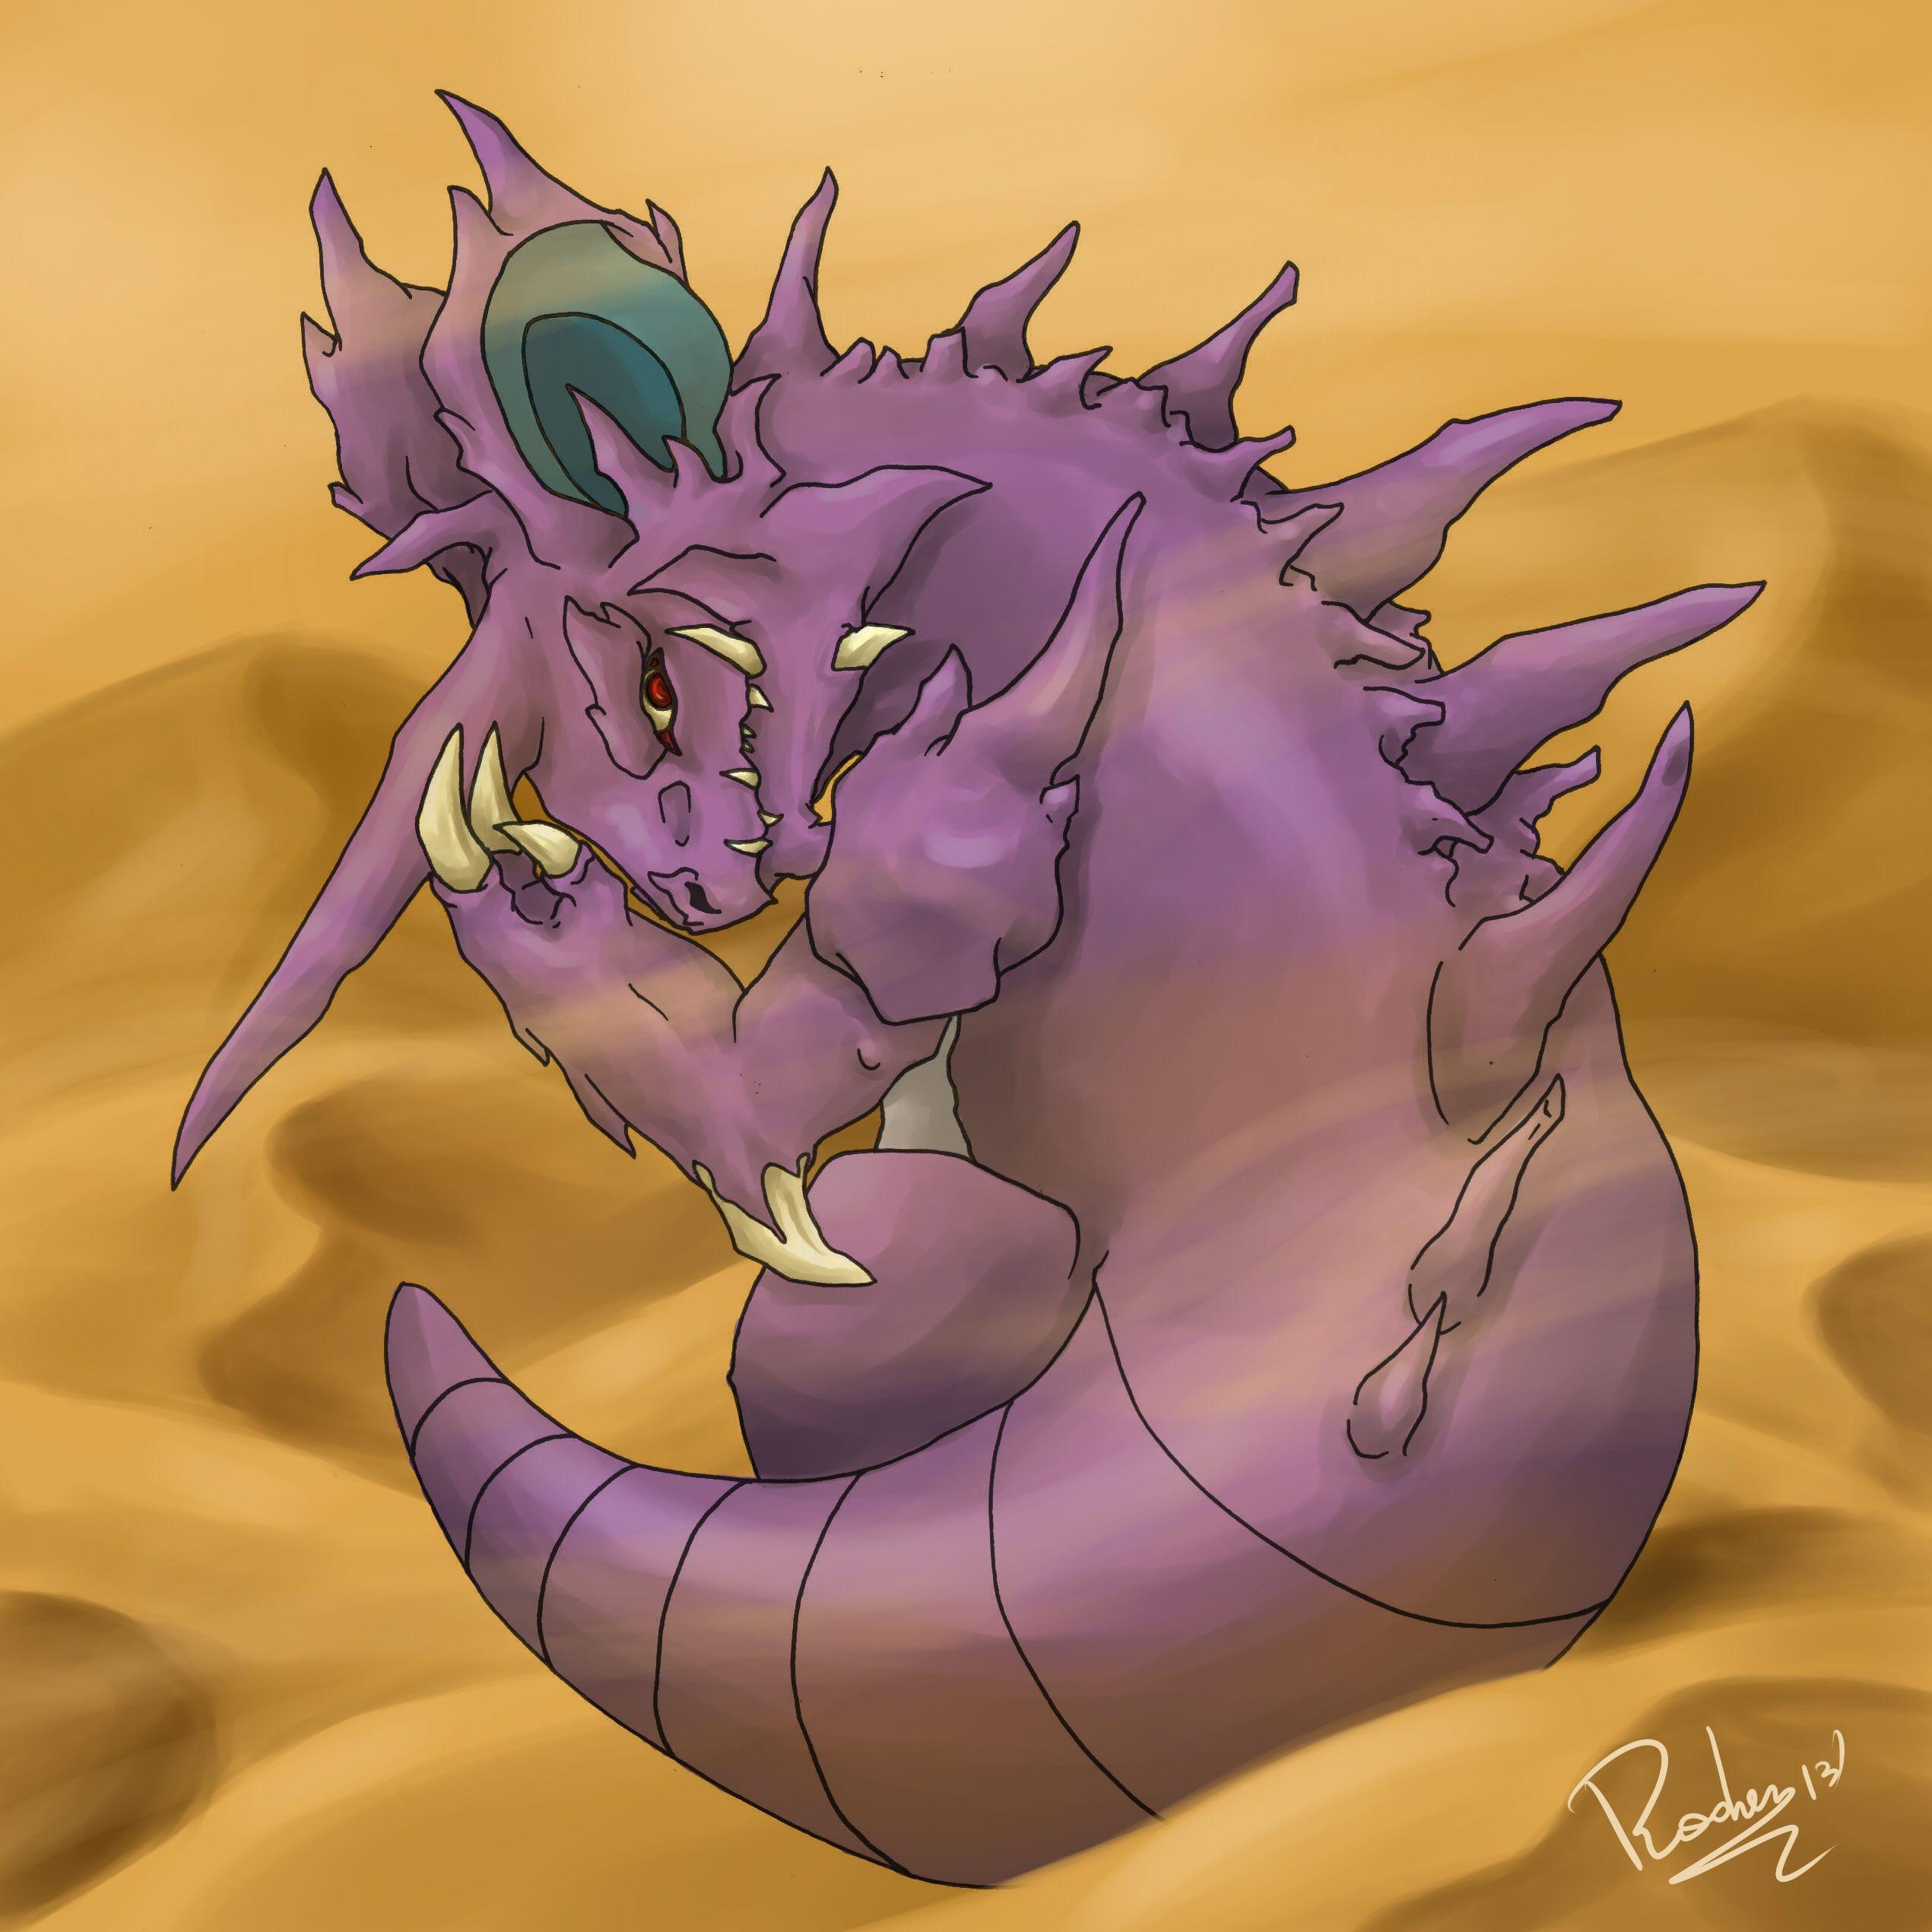 Nidoking by Radven on DeviantArt